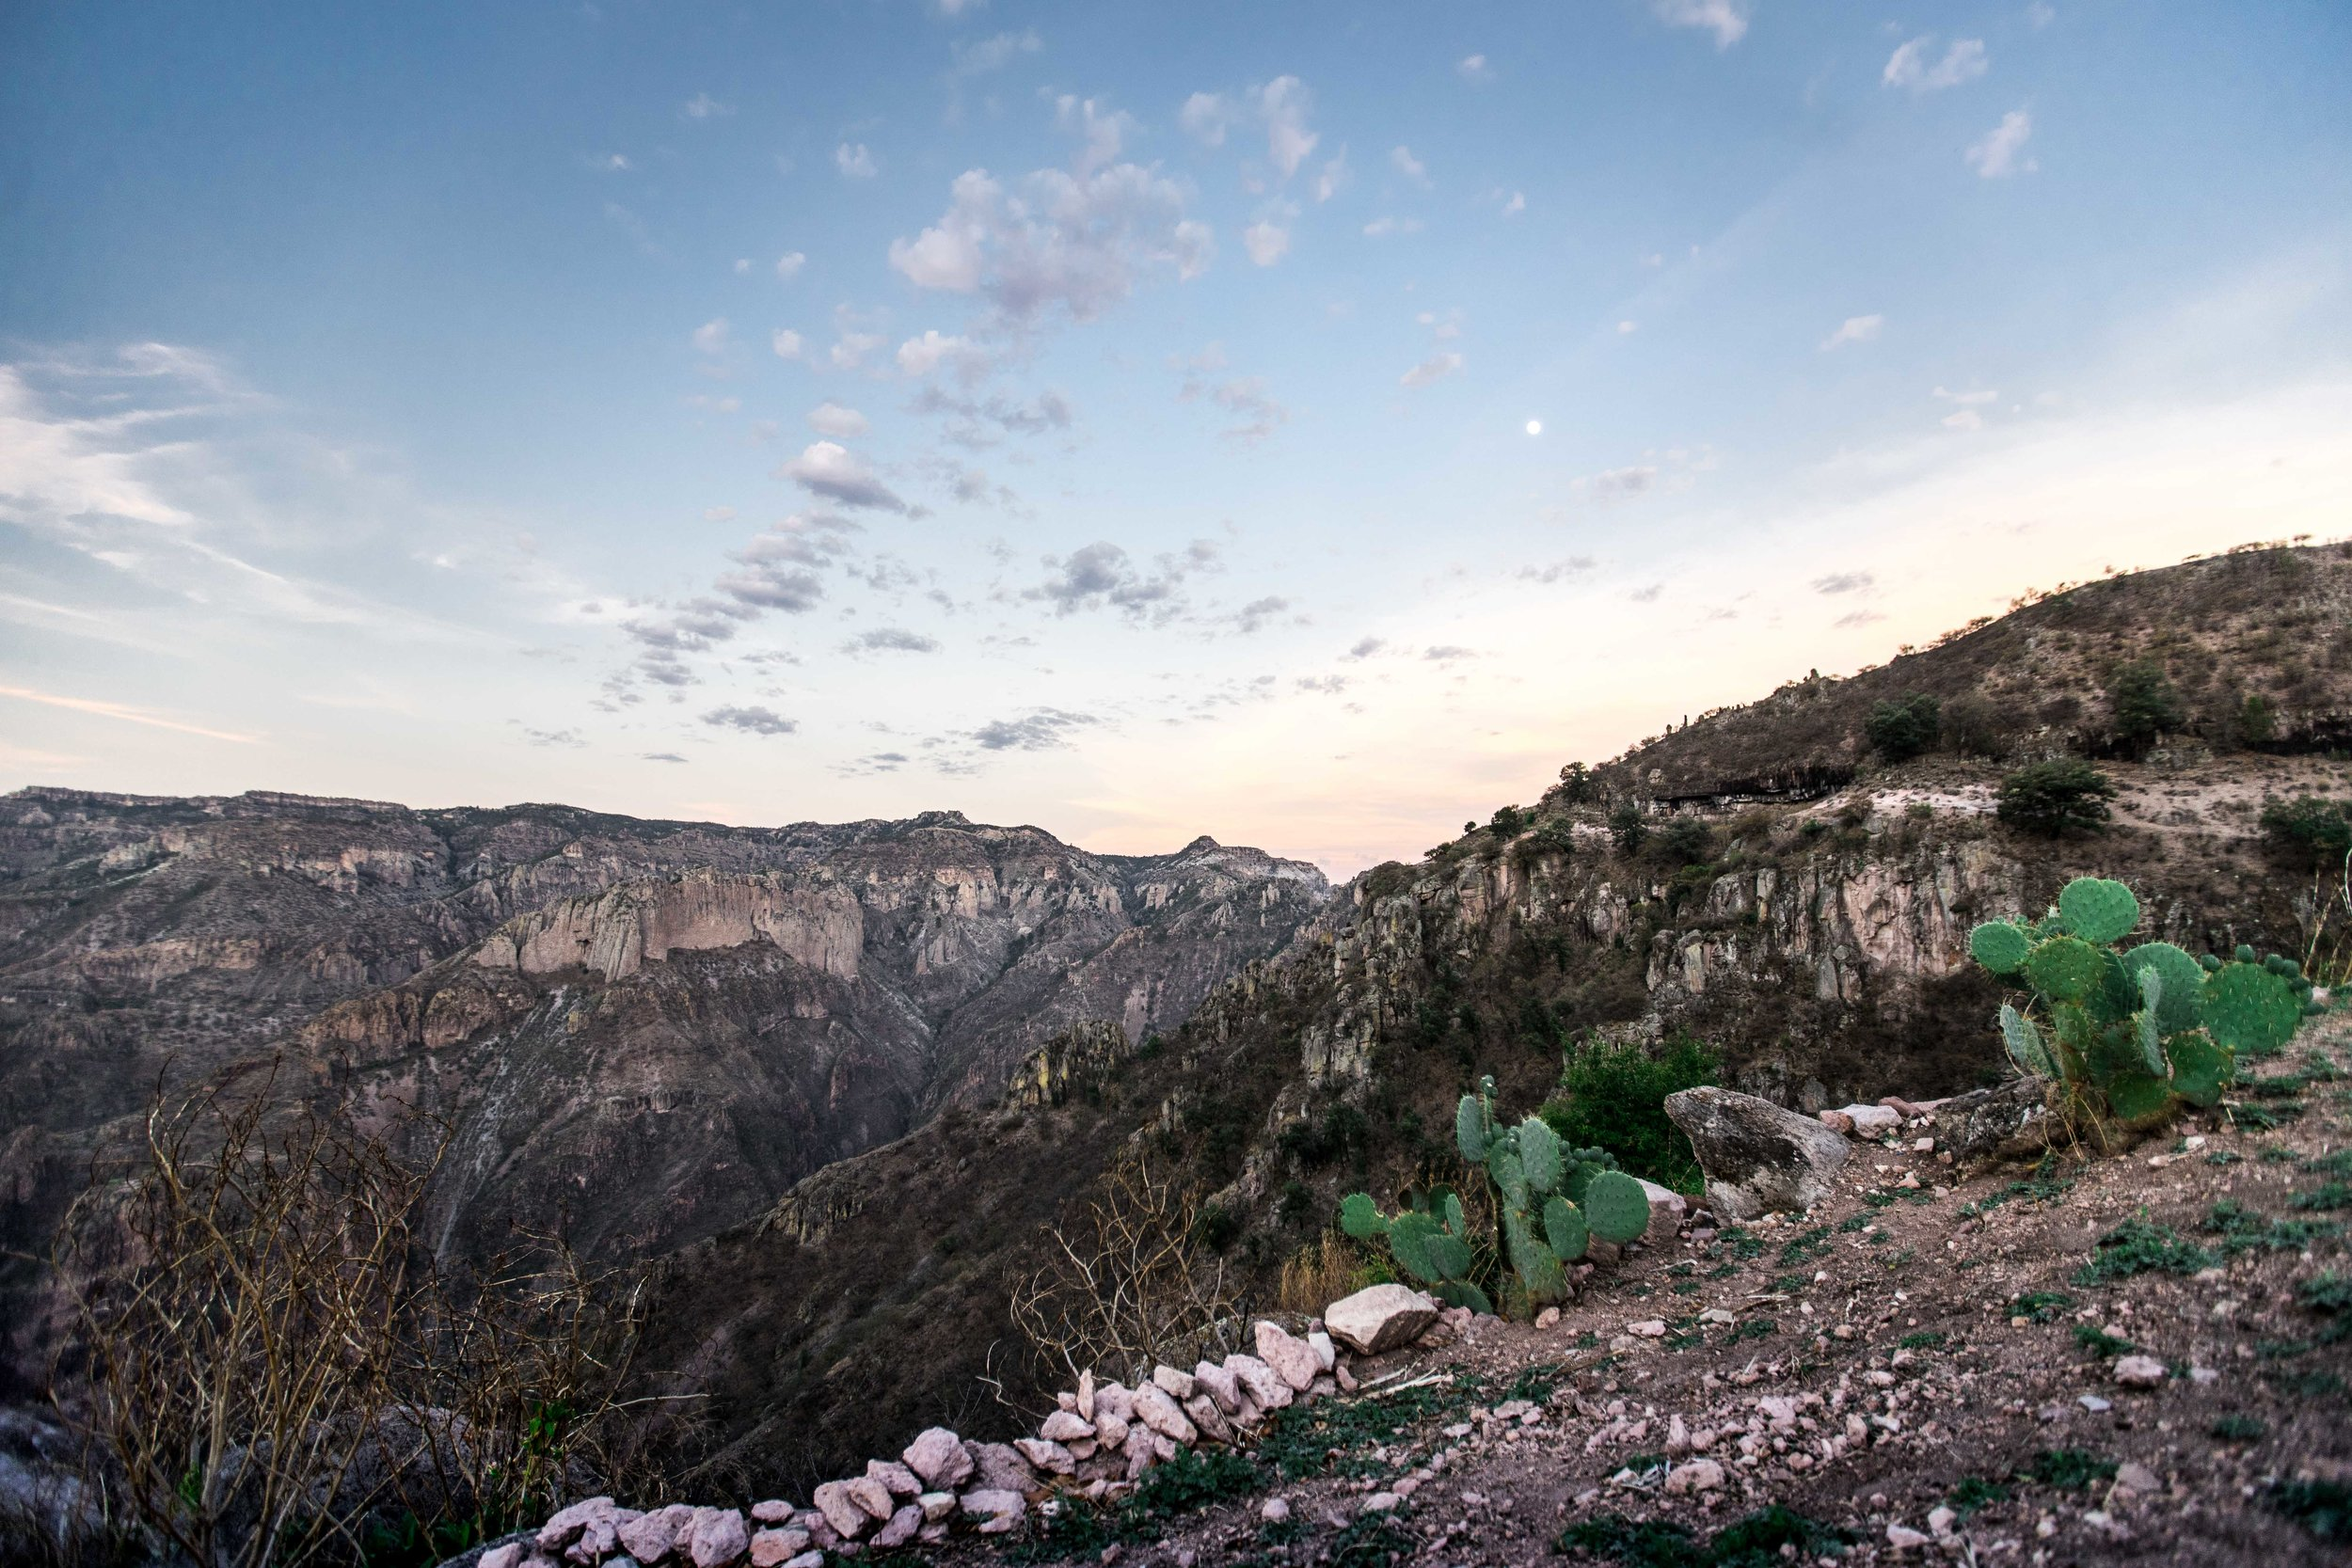 BARRANCAS DEL COBRE - INNER STRENGTH AND SOLITUDE // A SENSE OF SPACE AND TIMEOur journey into the Barrancas del Cobre, Mexico's northernmost Copper Canyons, is an epic adventure into one of the world's last true wildernesses. We will venture deep into the canyons' inner sanctum, trekking up sheer mountain trails and camping under the open stars by firelight. This voyage will challenge your body, mind, and spirit, and we will carry all we need on our backs as we trace our steps away from civilization into the silent echoes of these vast and desolate ranges. Every evening, our group will congregate around the campfire and co-create space for inner contemplation and connecting back to the wonders of the wild.This journey features:- Two nights in charming rustic hotels in Creel and Divisadero and two nights camping under the stars around campfires.- Three days trekking precipitous mountain trails and ascending exhilarating peaks with a local guide, bathing in hidden waterfalls and meandering through the magnificent Valle de los Monjes.- An introduction to local NGO Tierra Nativa and their work with the nomadic Tarahumara tribe.- Our founders' participation and orchestration of adventures.